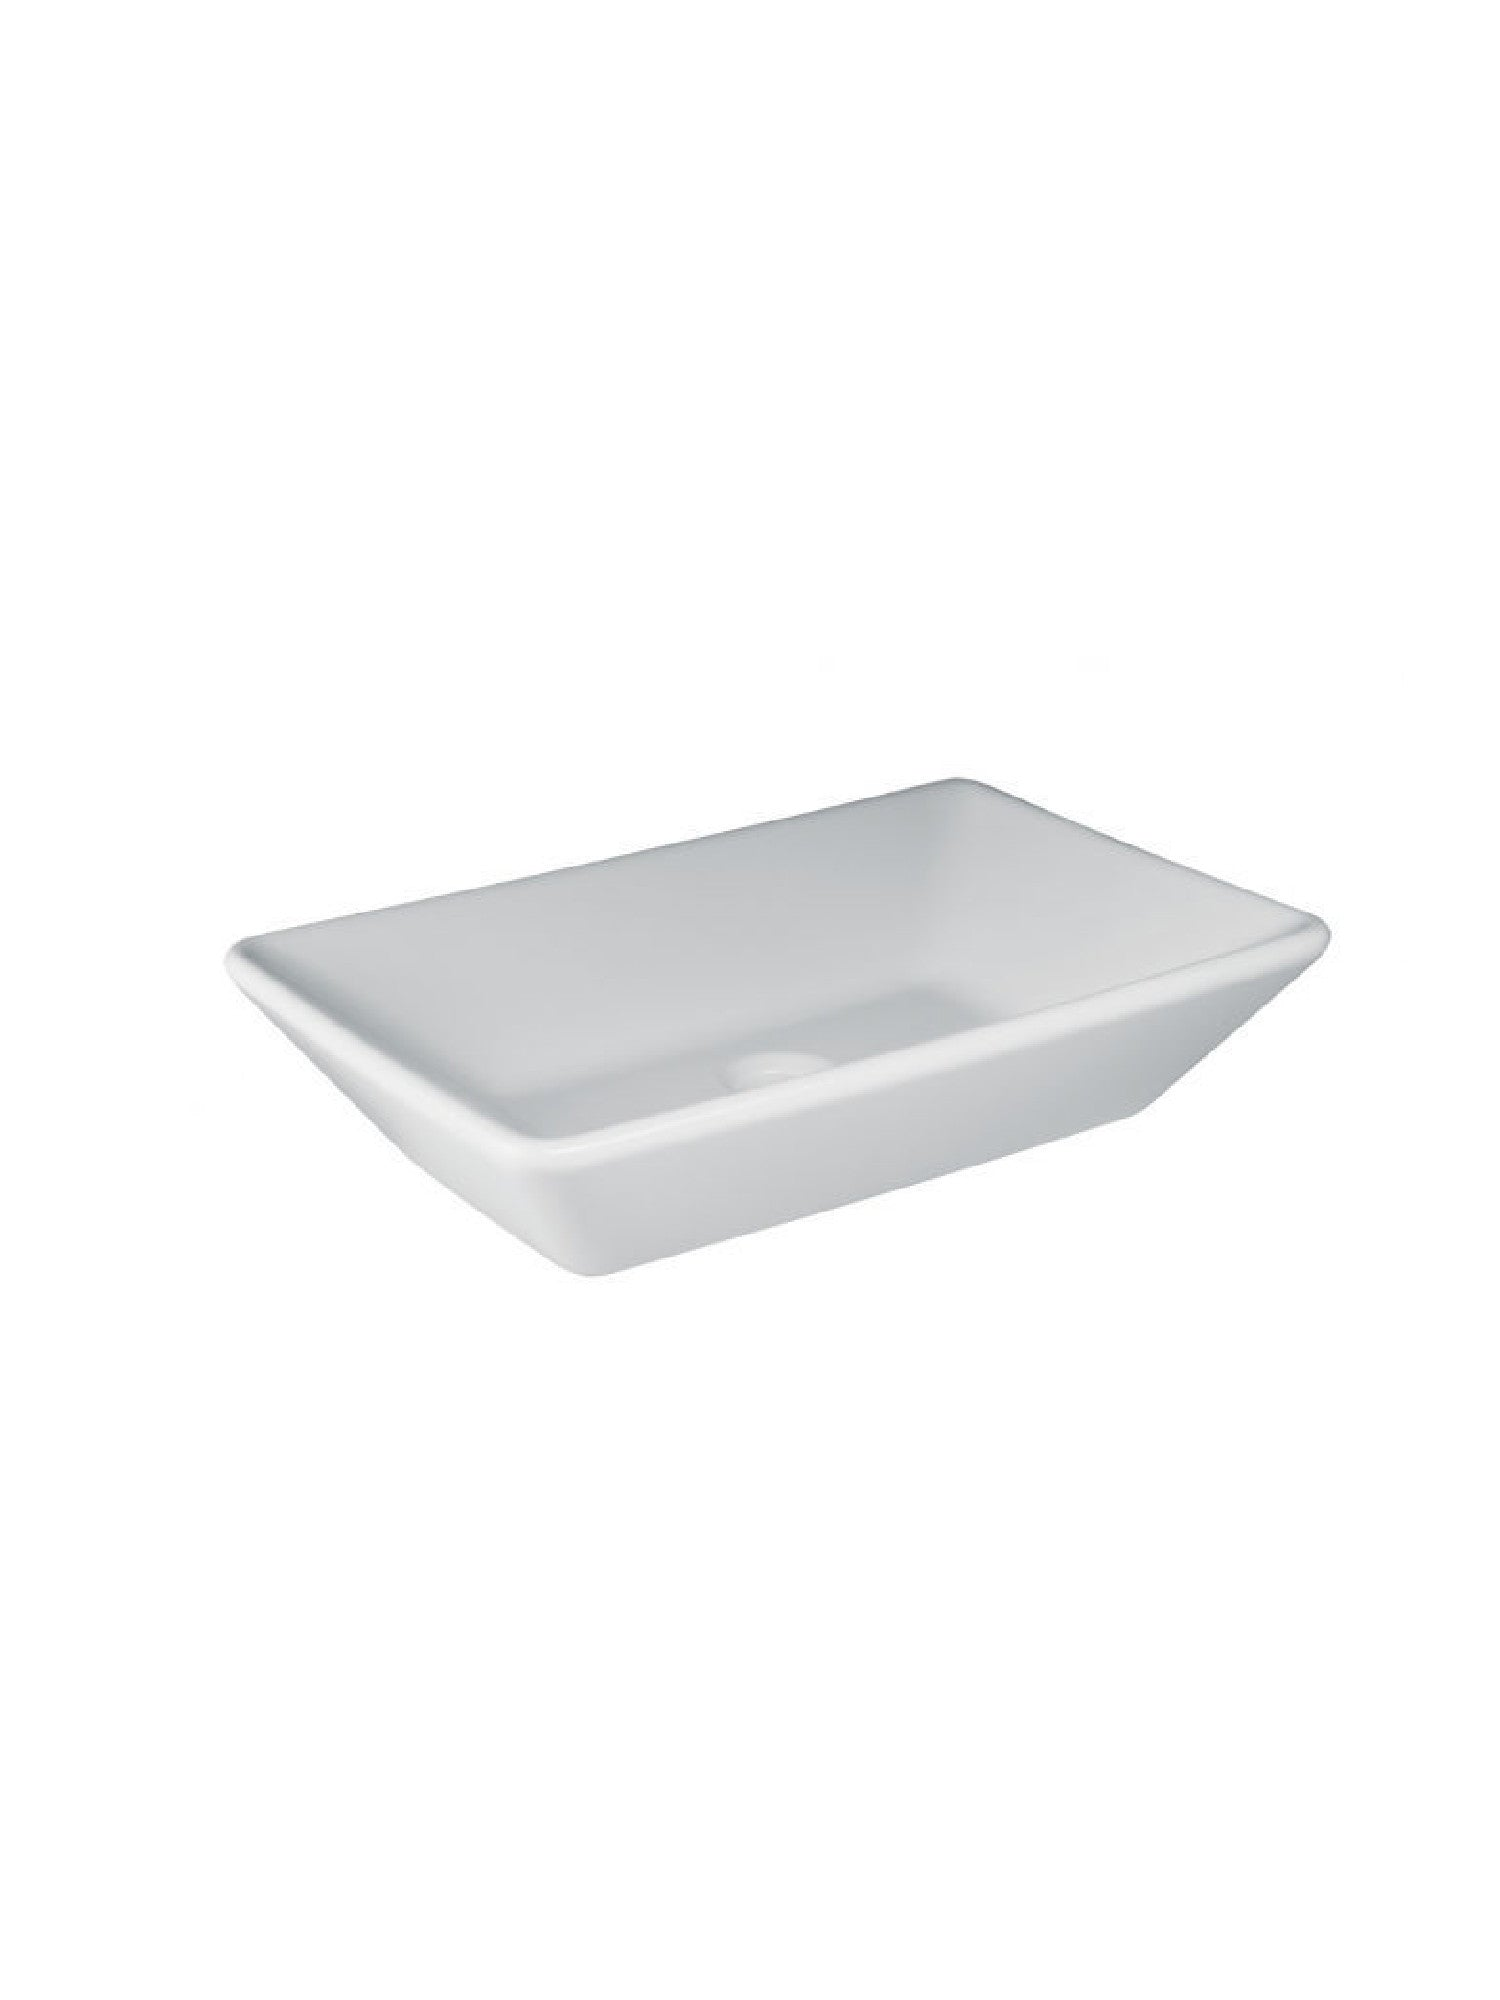 Sign Countertop Basin #108940